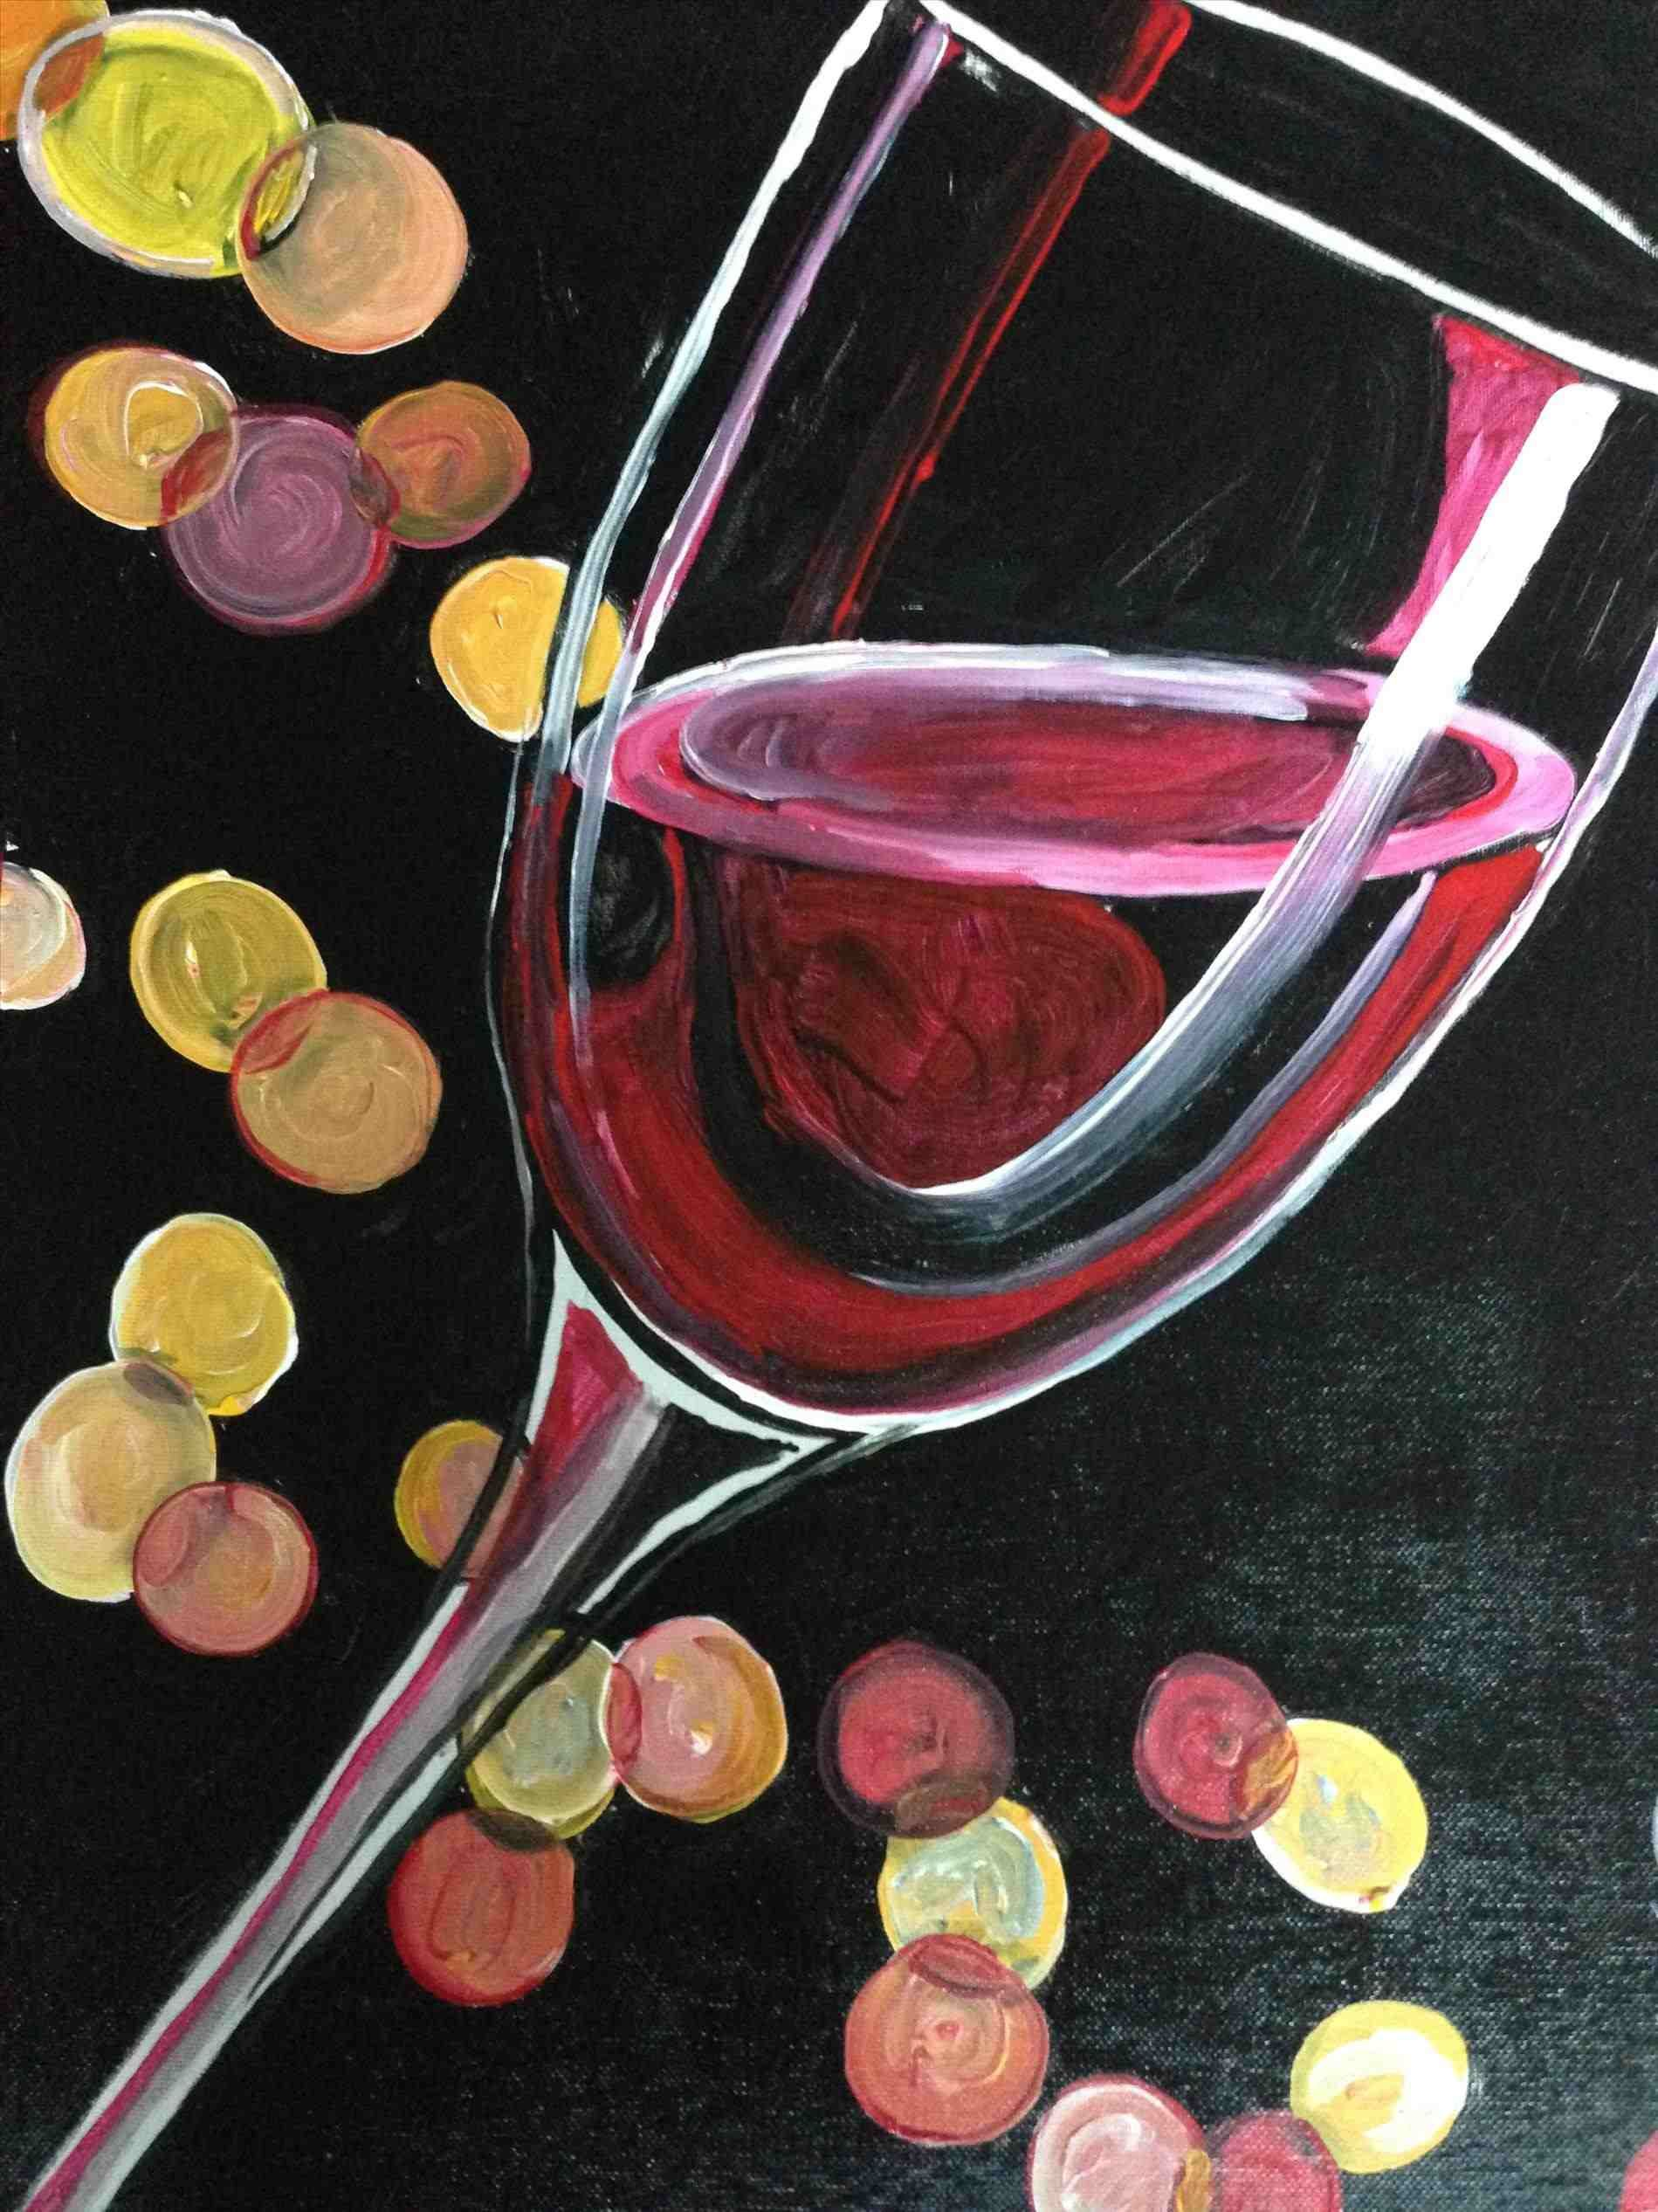 Wine Glass Canvas Painting - private party e2 80 93 wine glass ...